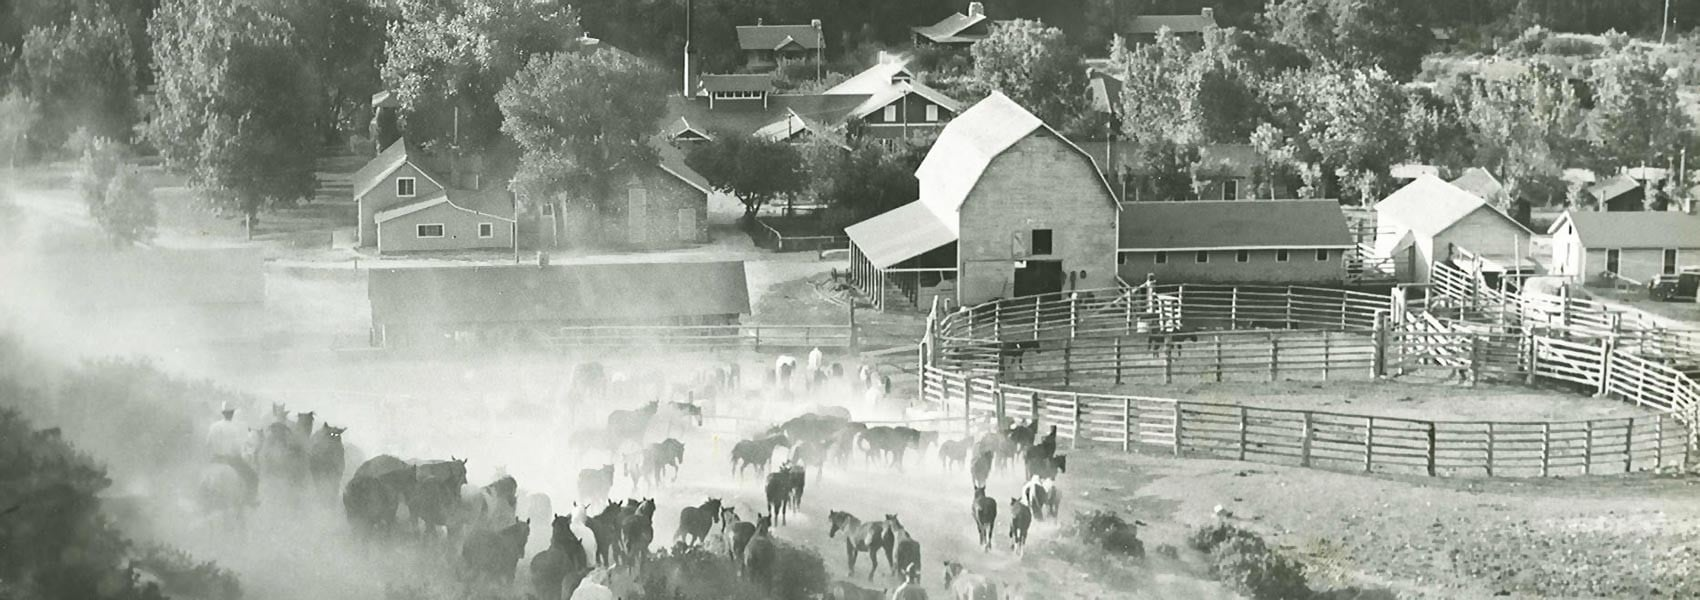 Eatons Ranch black and white photo